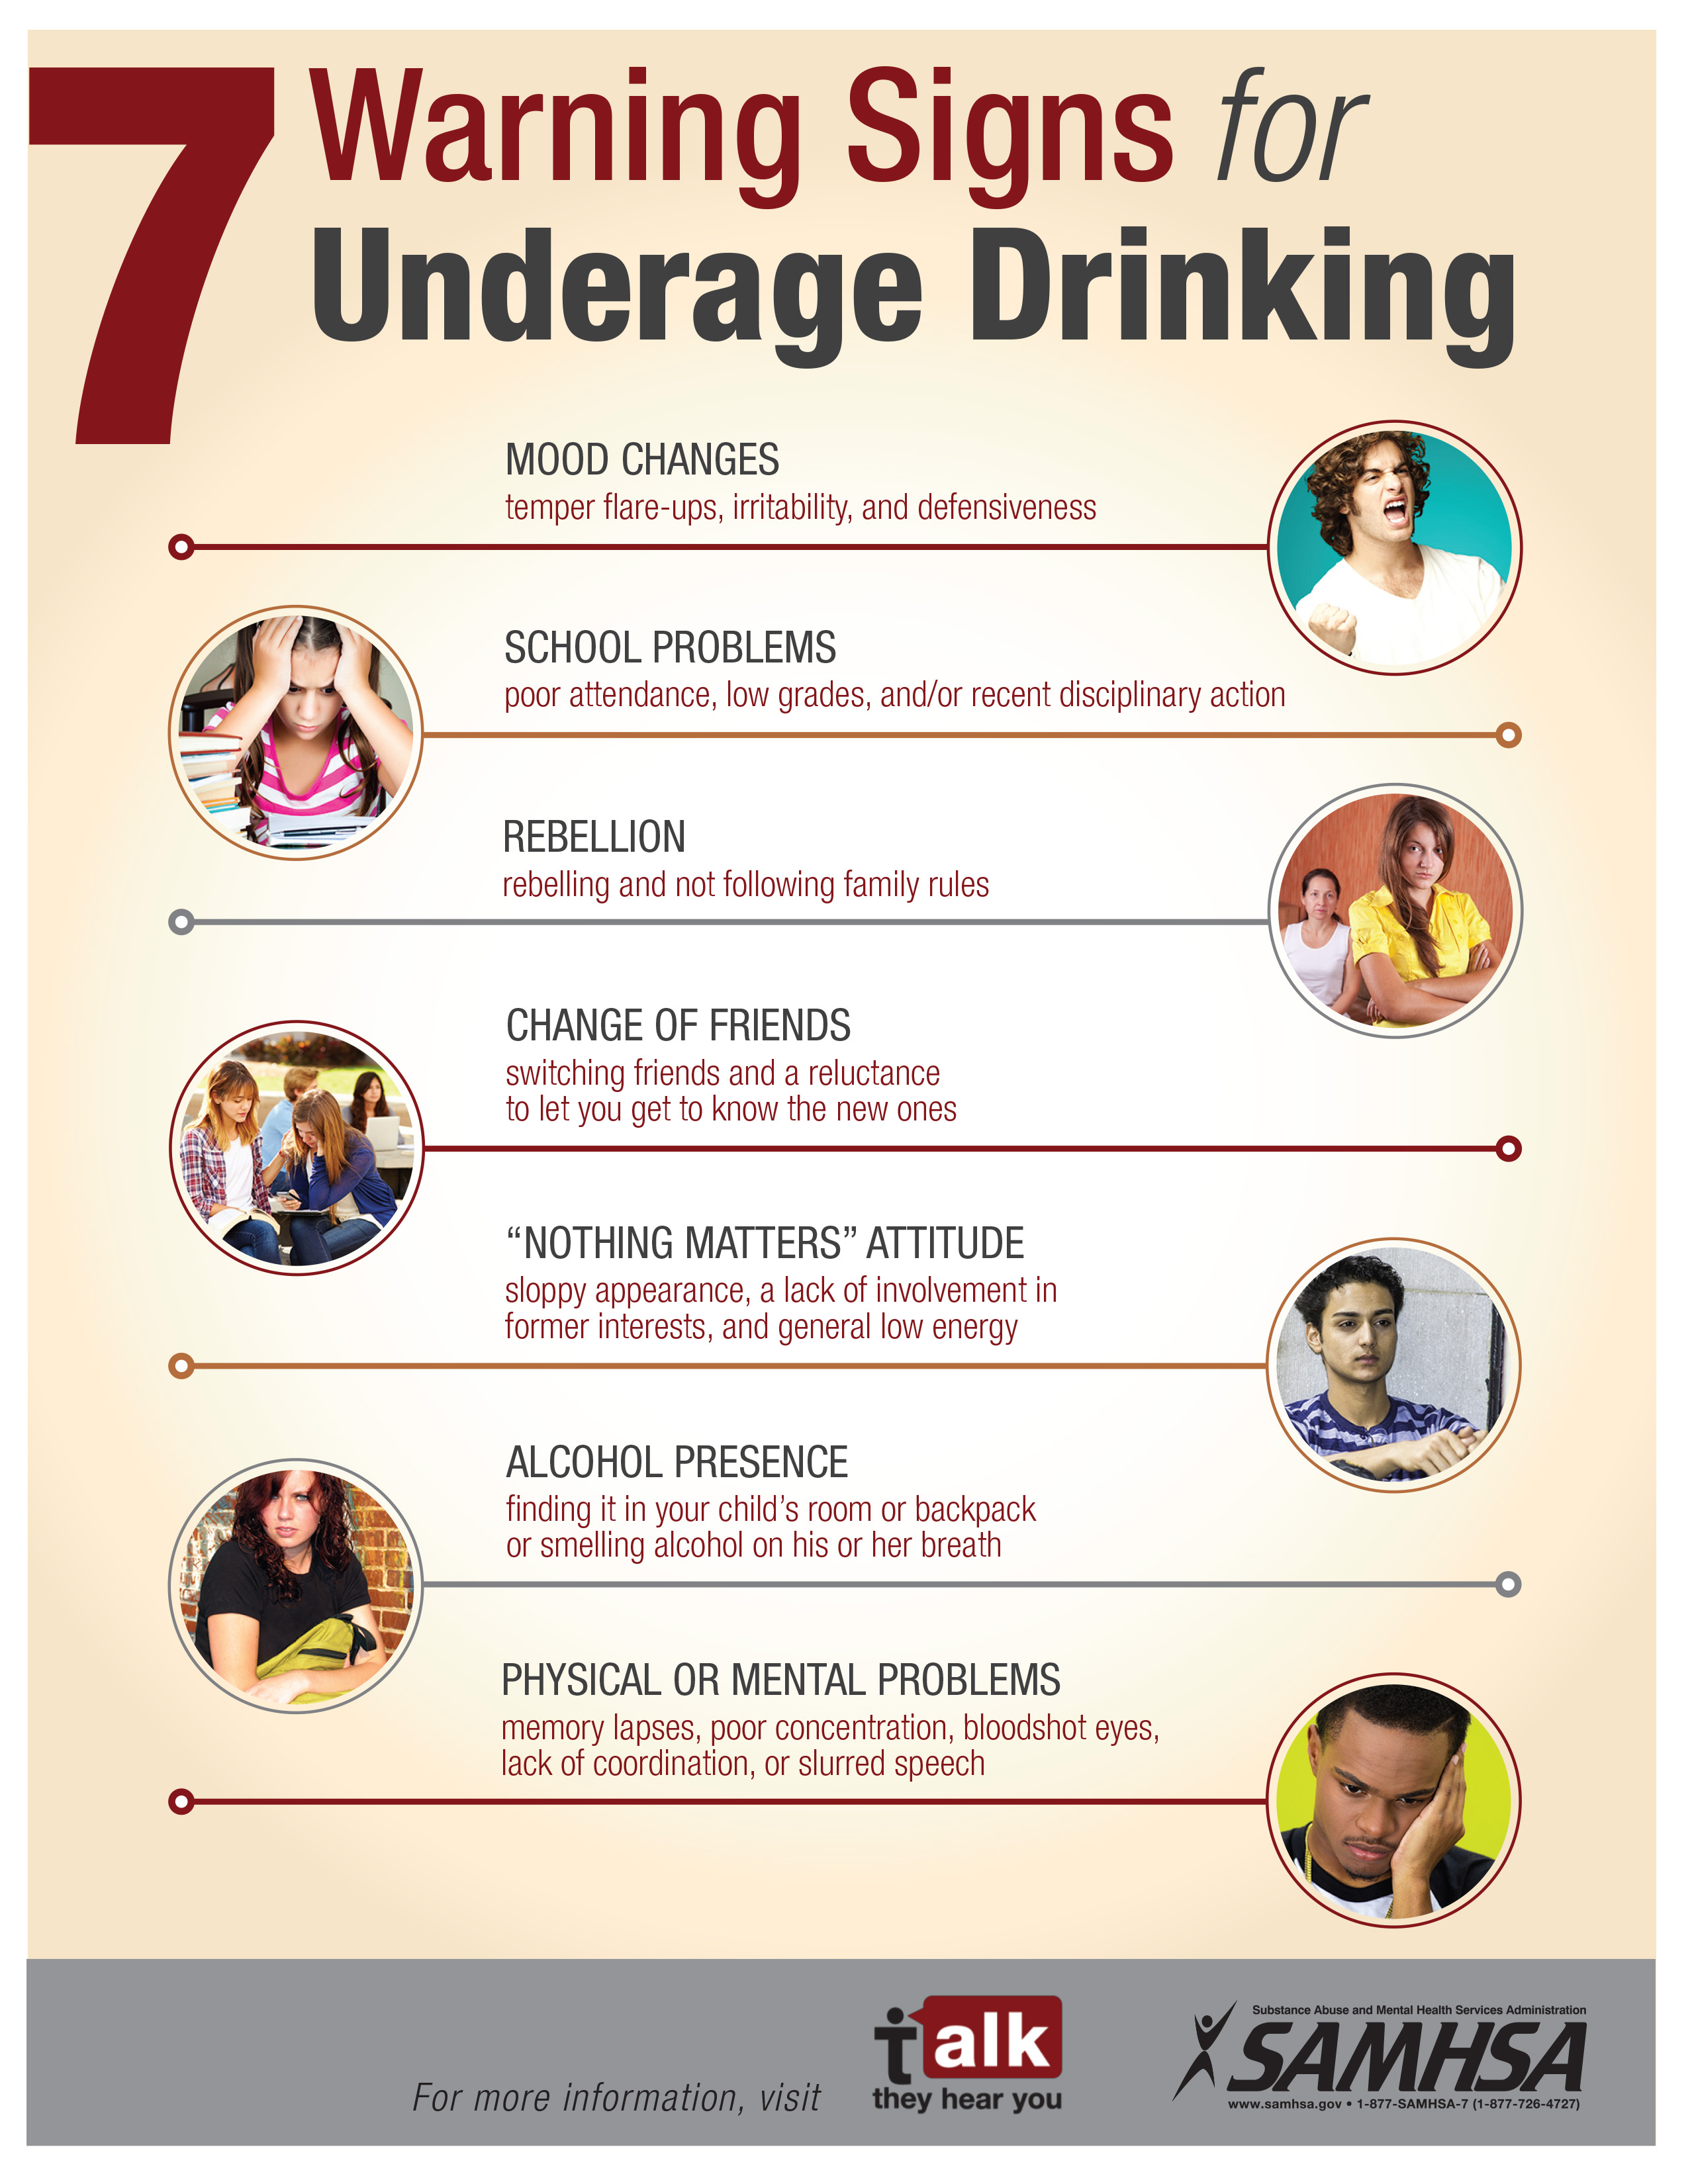 Counseling Substance Abuse Prevention